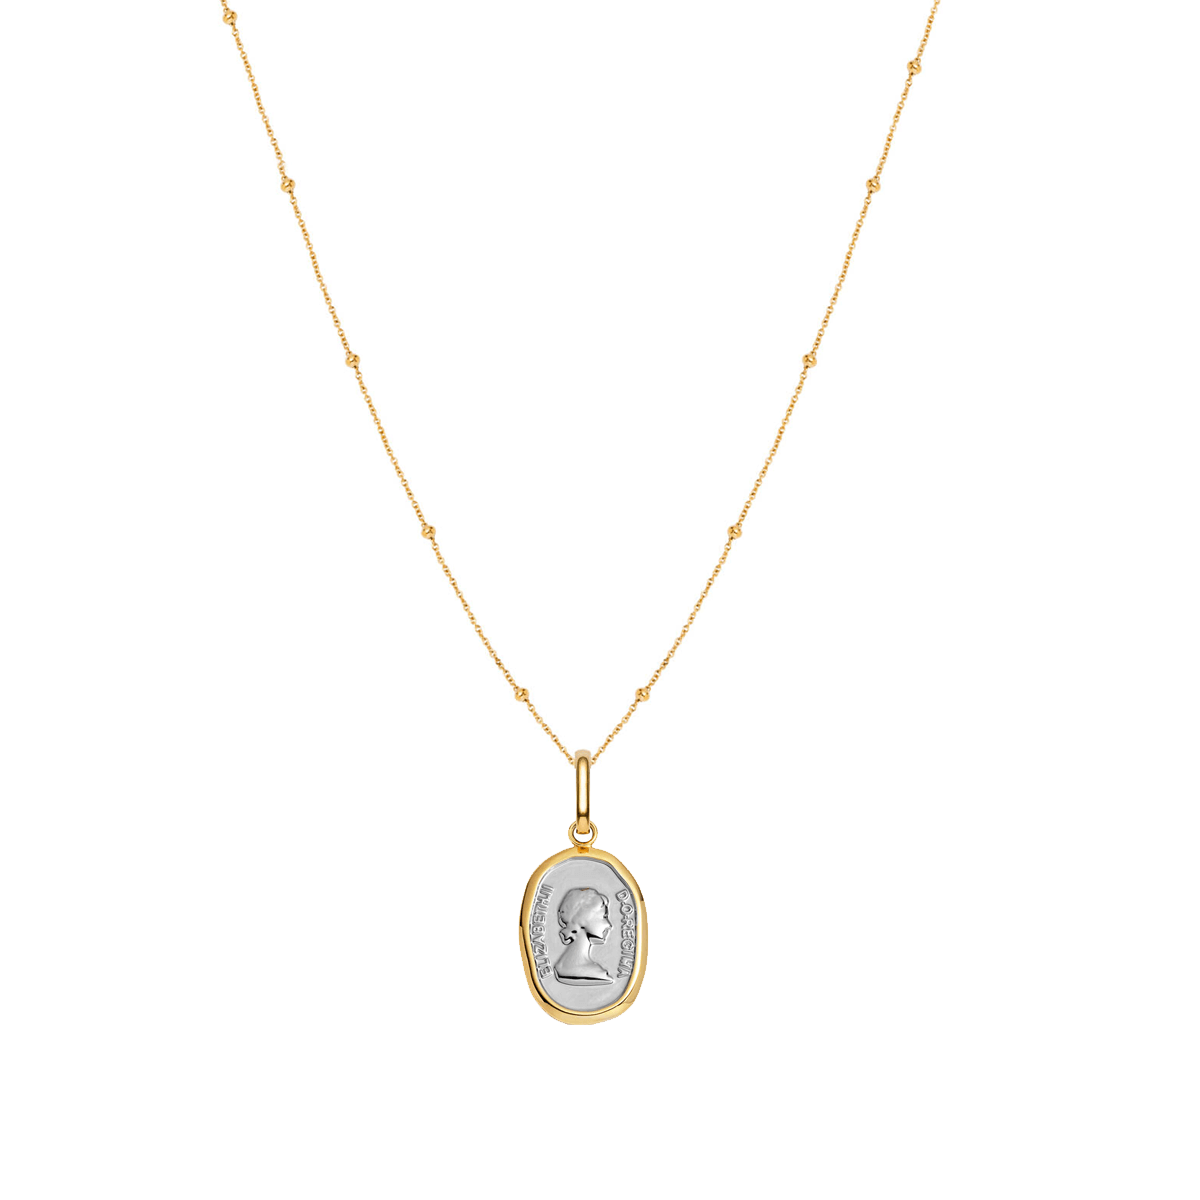 Queen Sphere Chain Necklace 20 in (Gold)